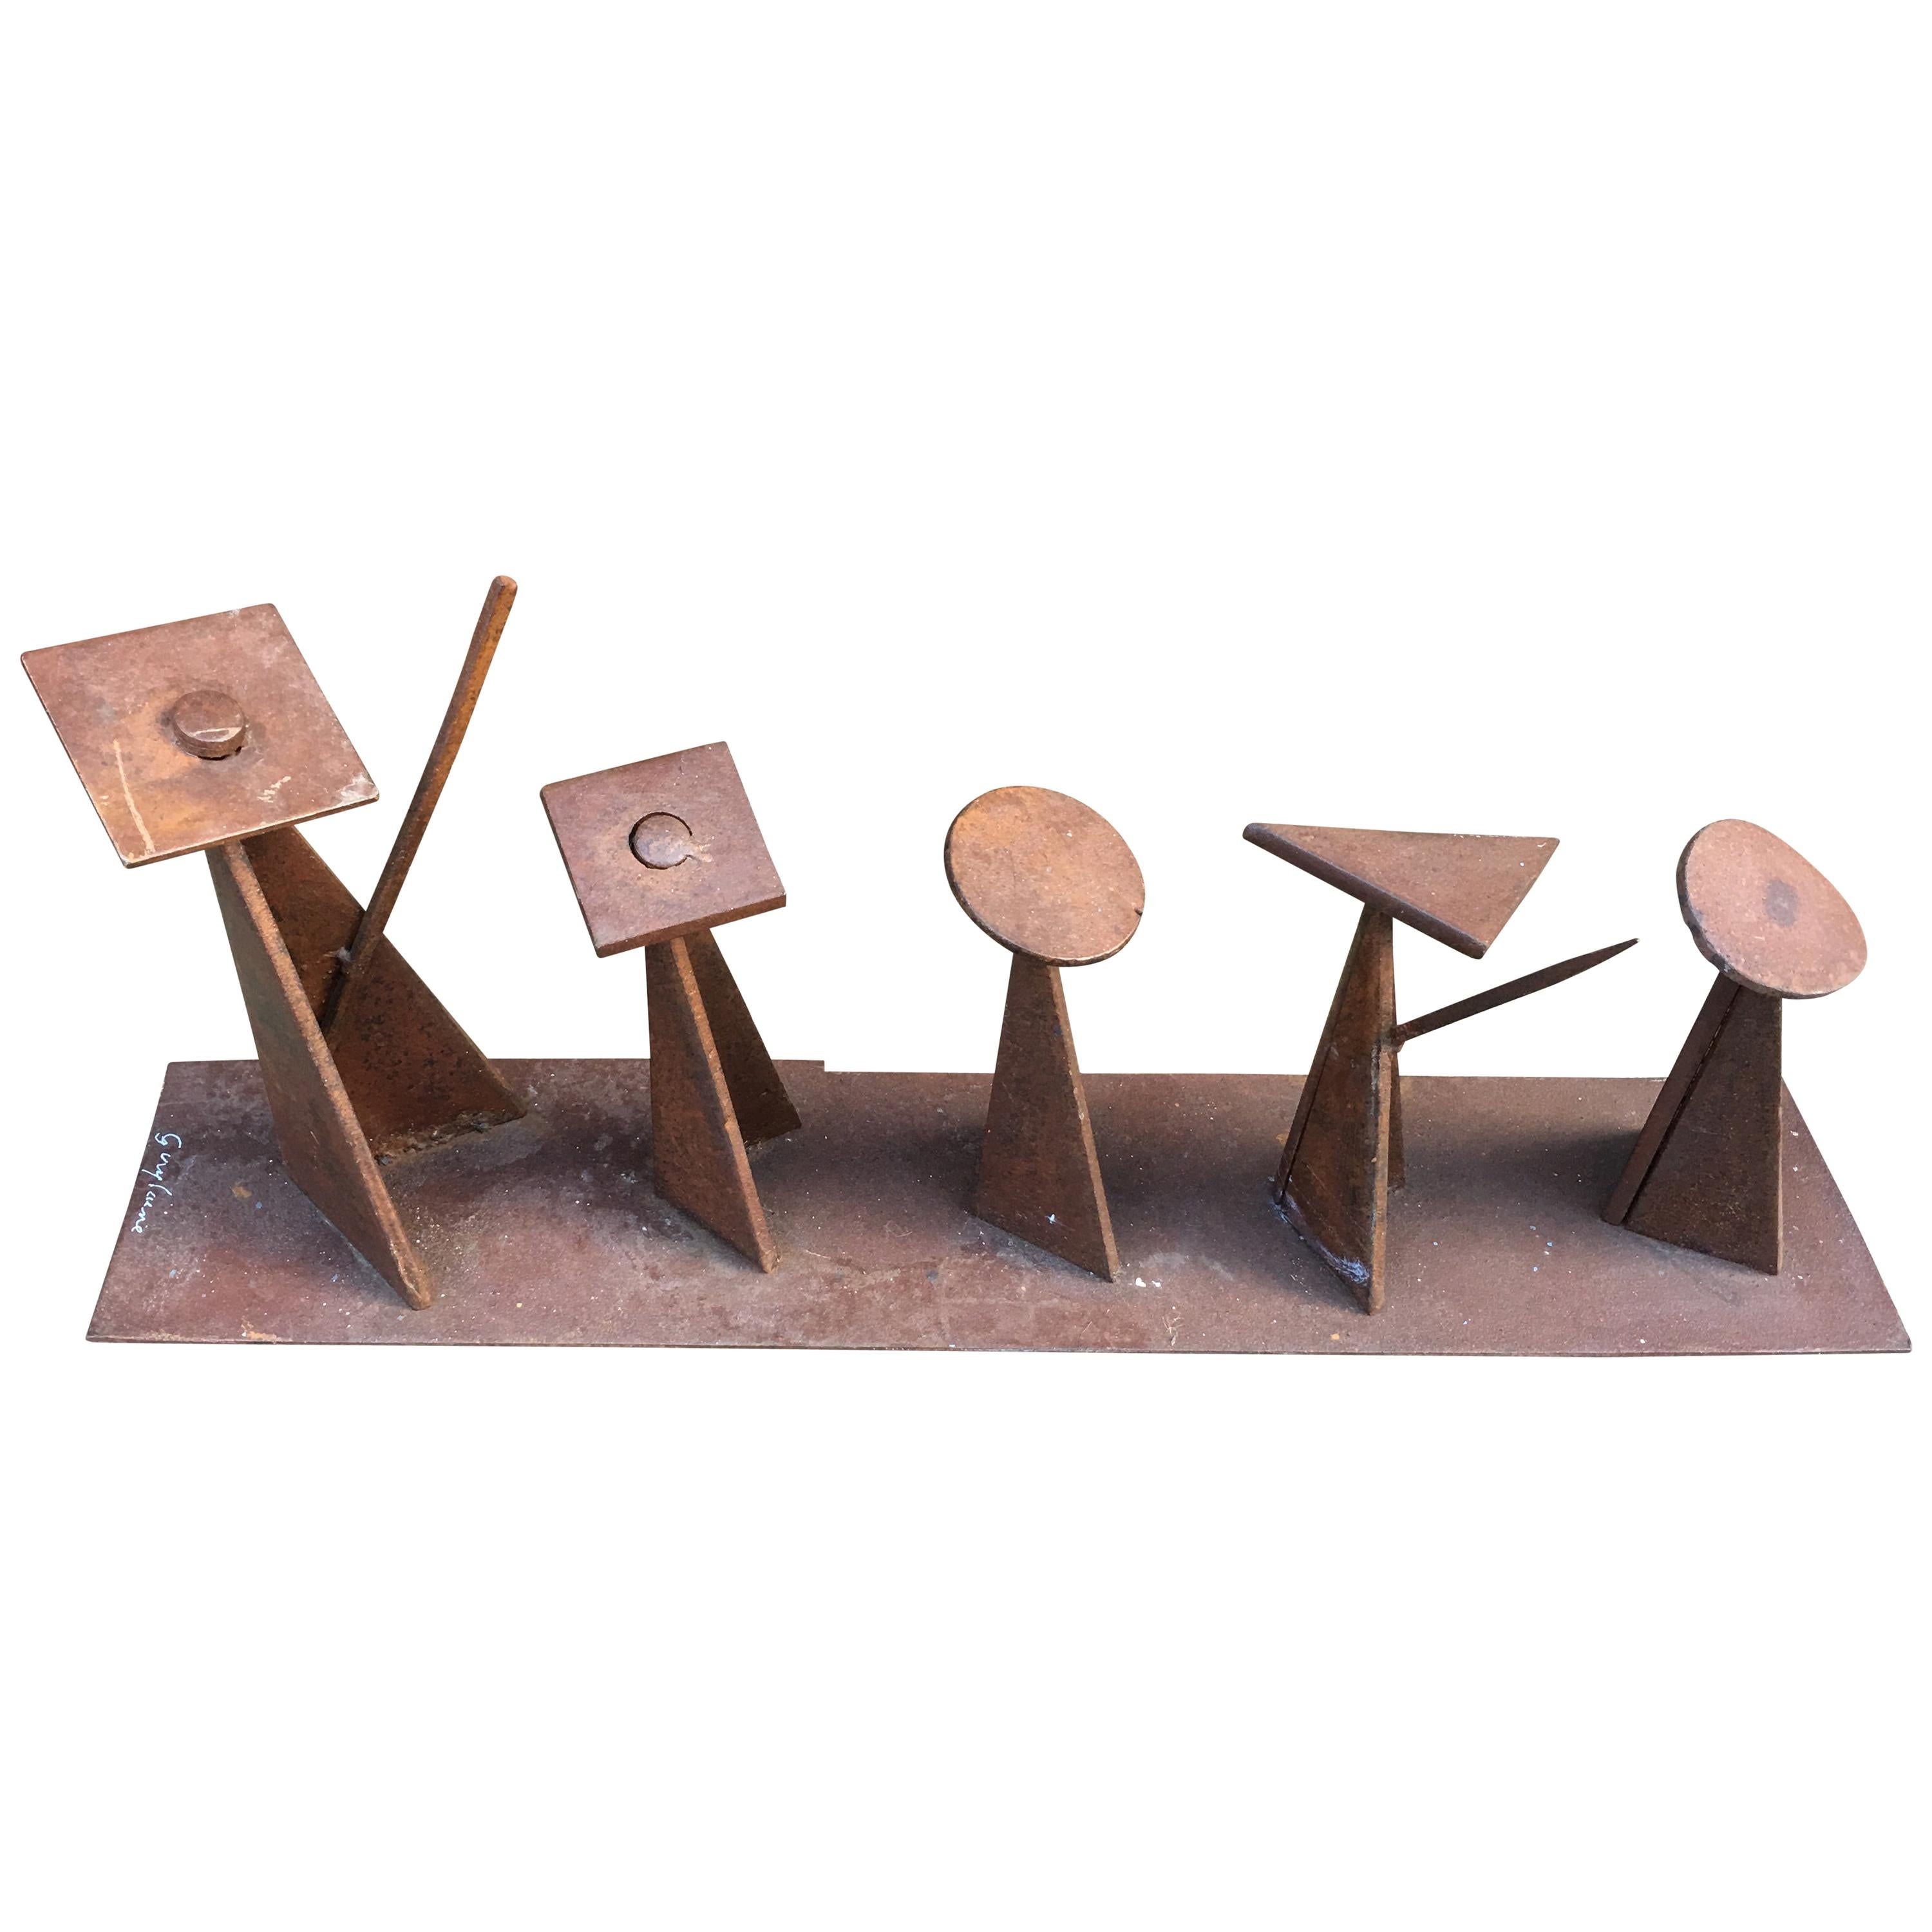 """Guylaine Guy """"Procession"""", Assembly of Metals"""